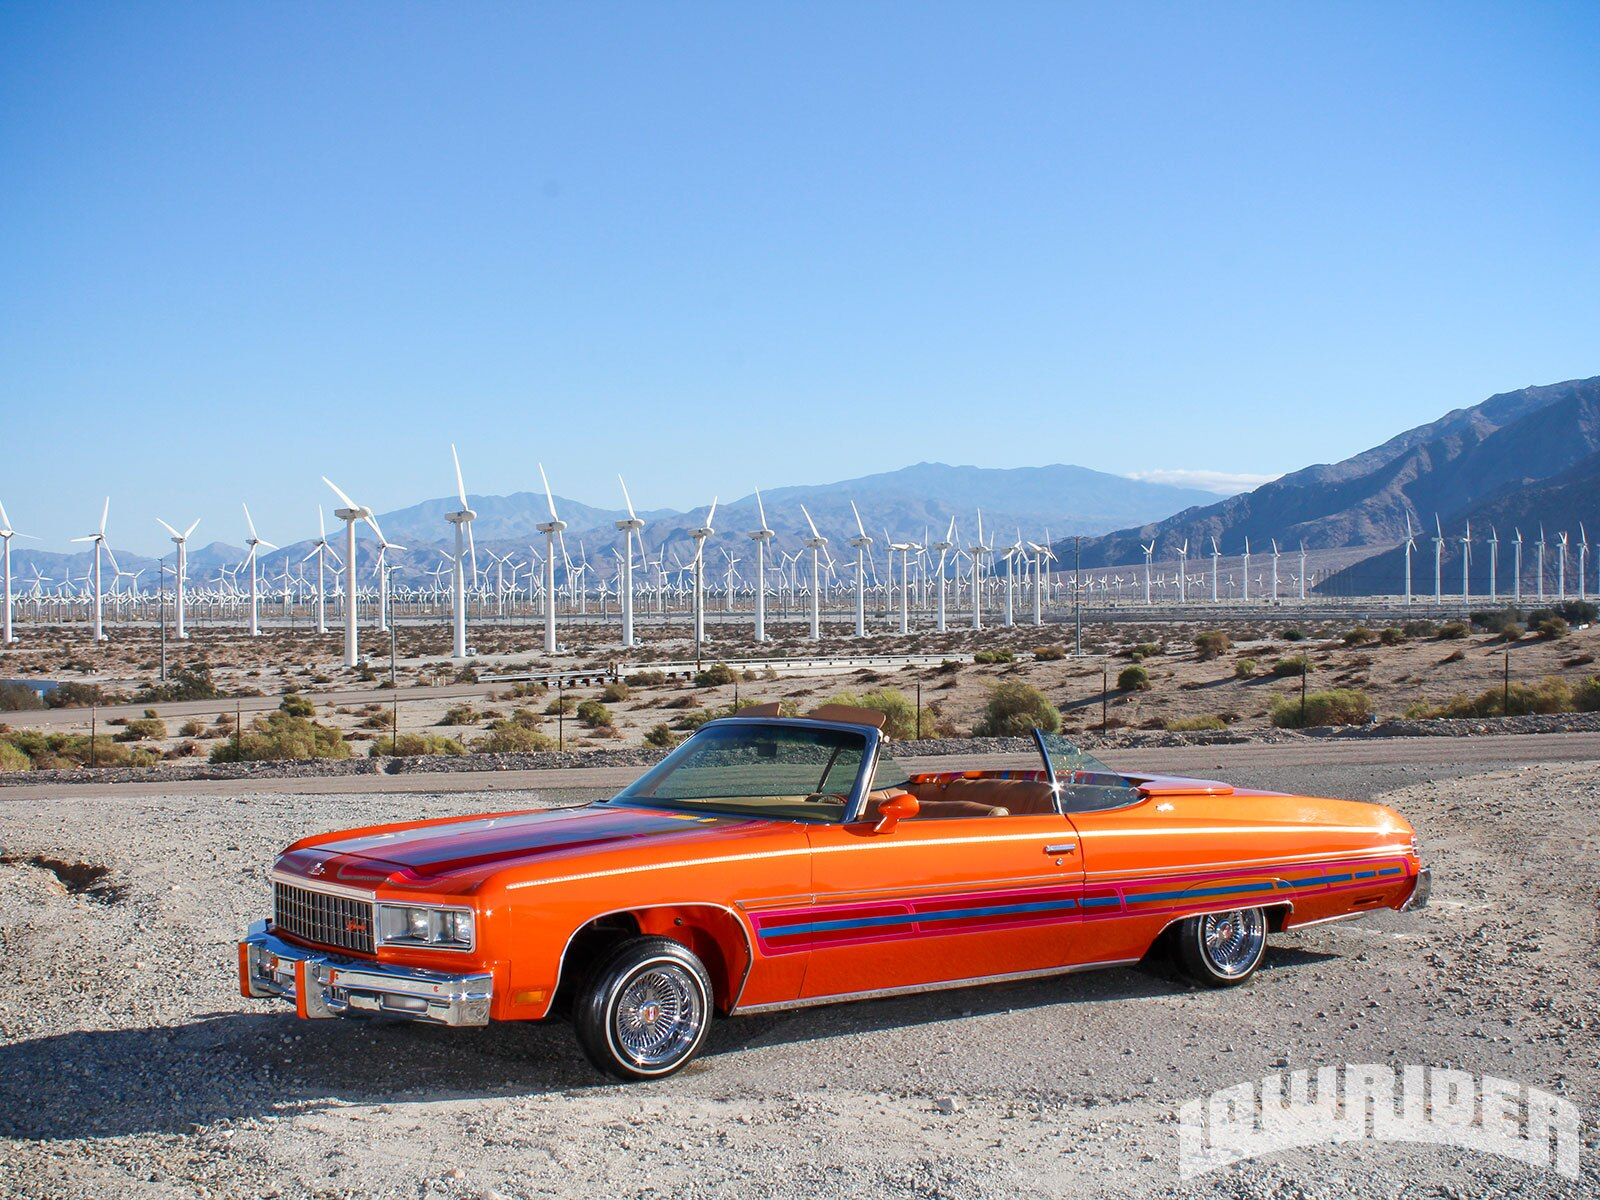 Aftermarket Parts For Chevy 1975 Chevrolet Caprice - Lowrider Magazine